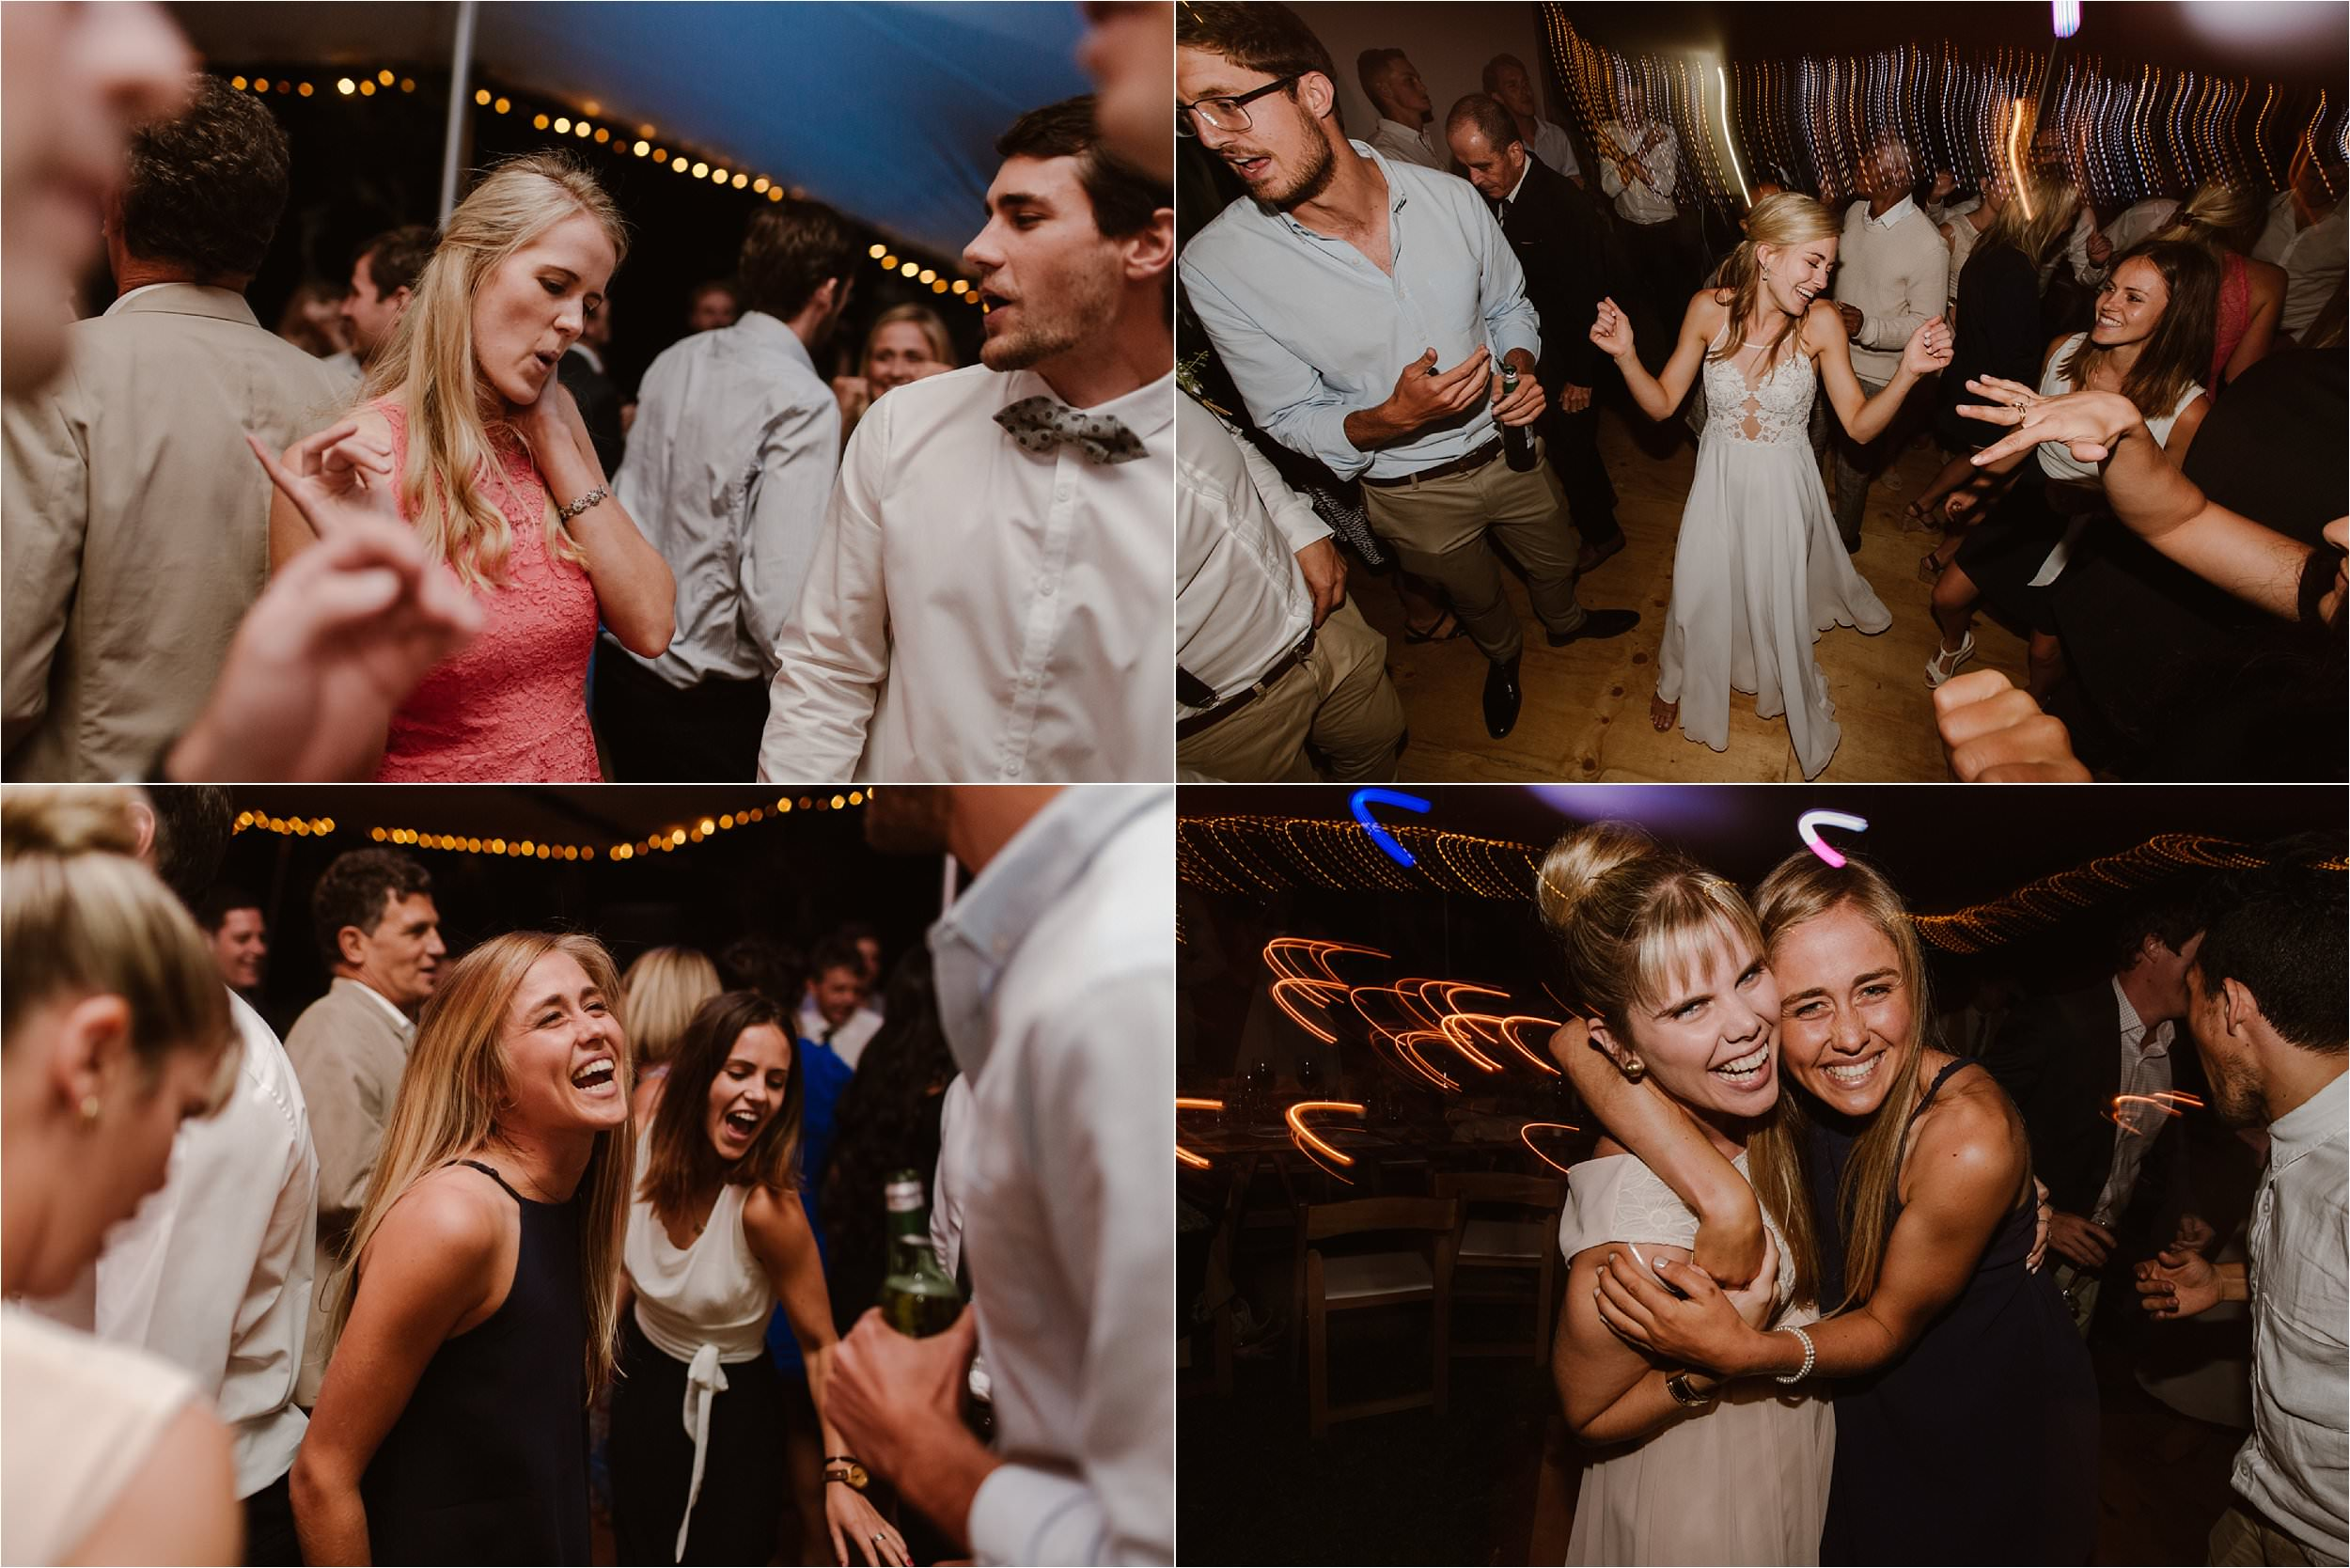 People smiling and dancing at the best wedding.